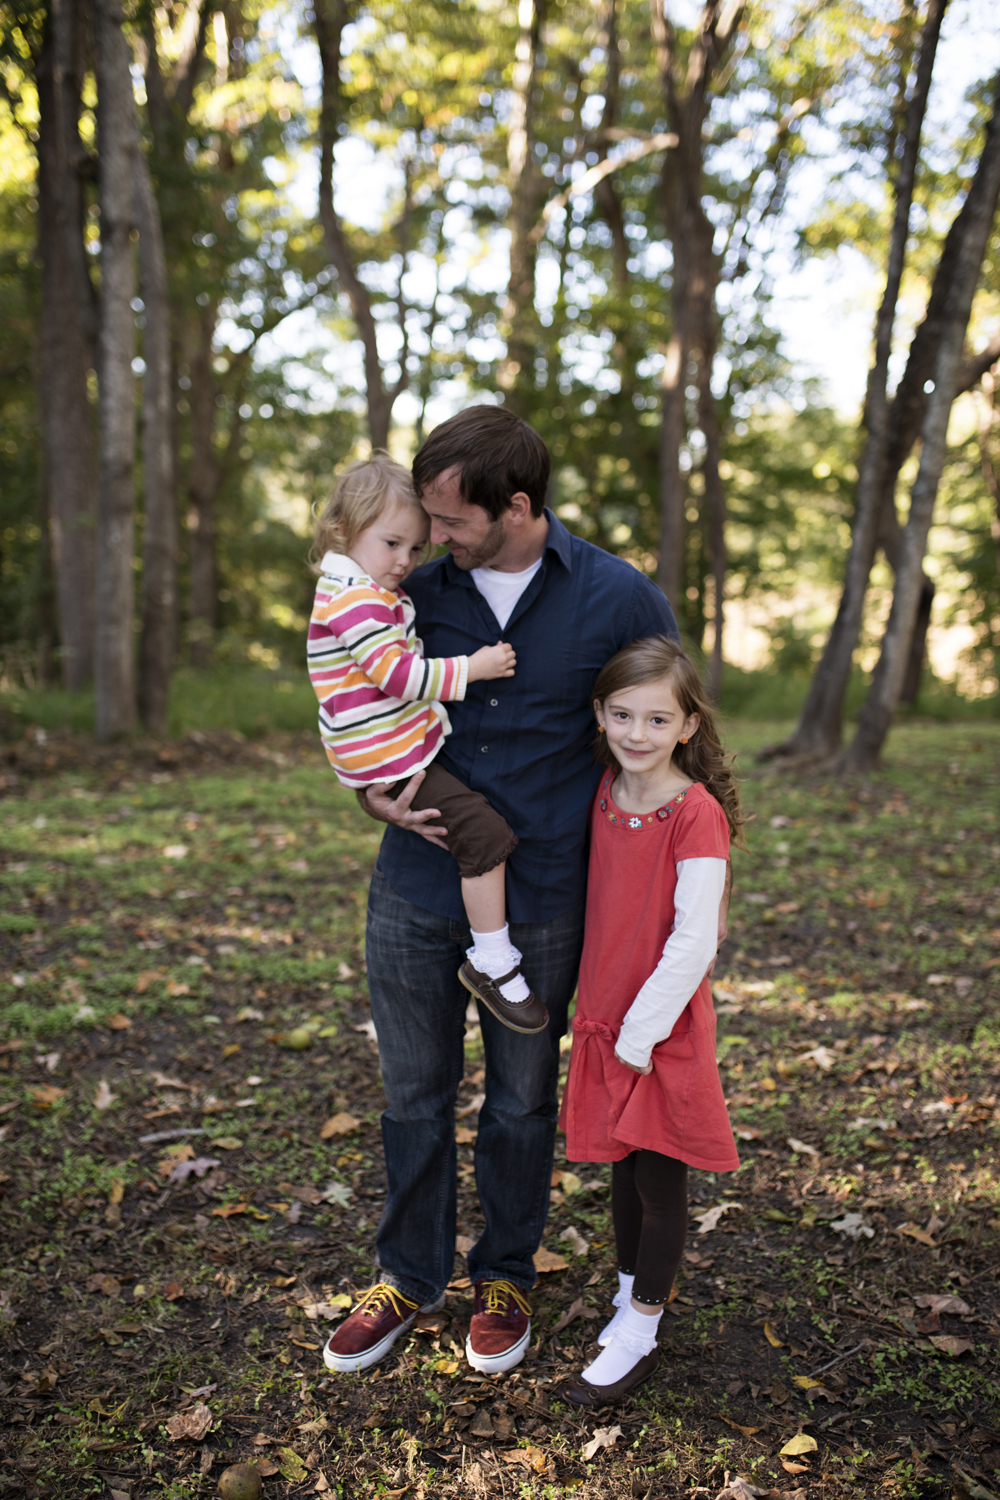 A dad with his daughters in the fall